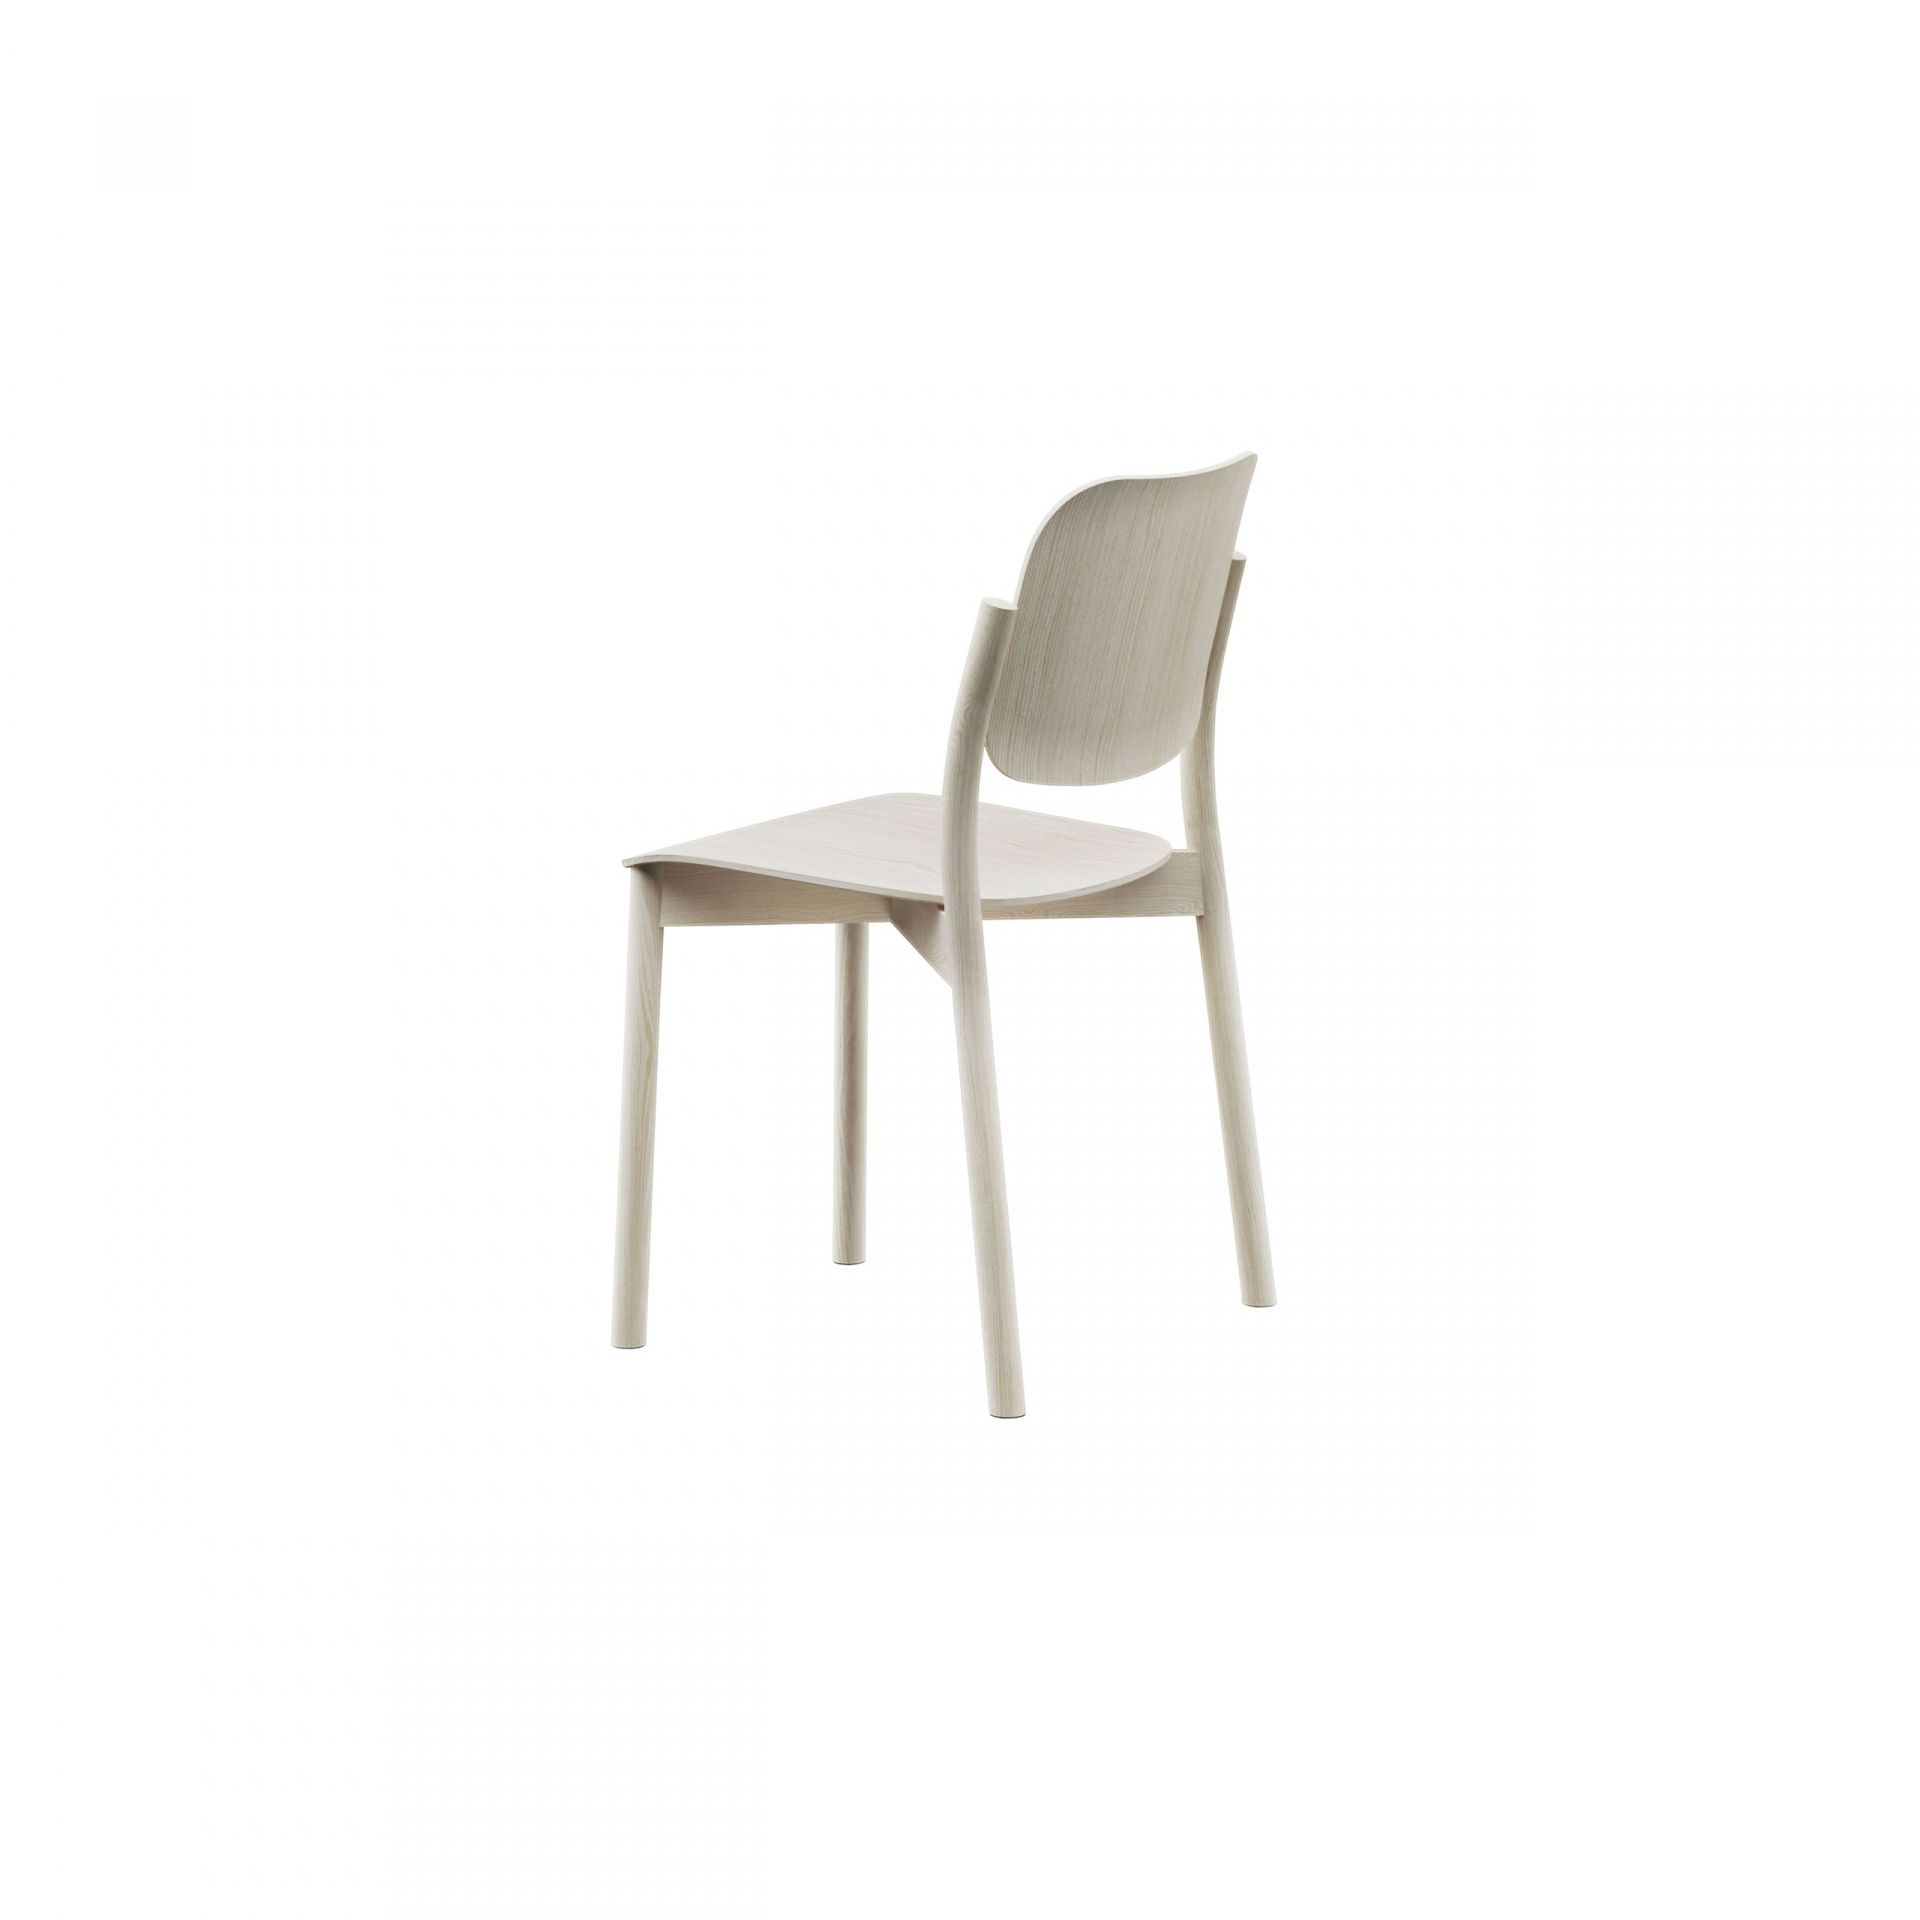 Zoe Wooden chair product image 9